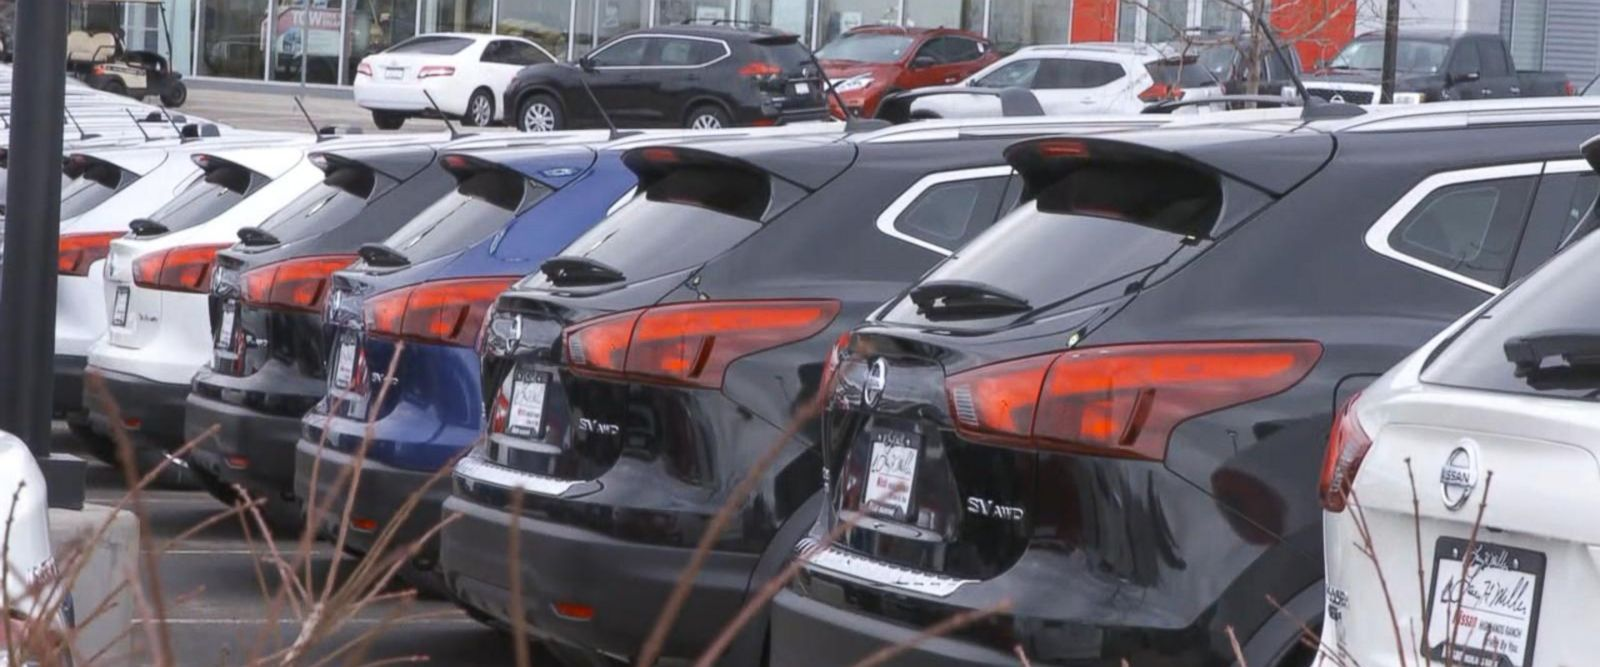 Sticker price savings on cars sold on Black Friday